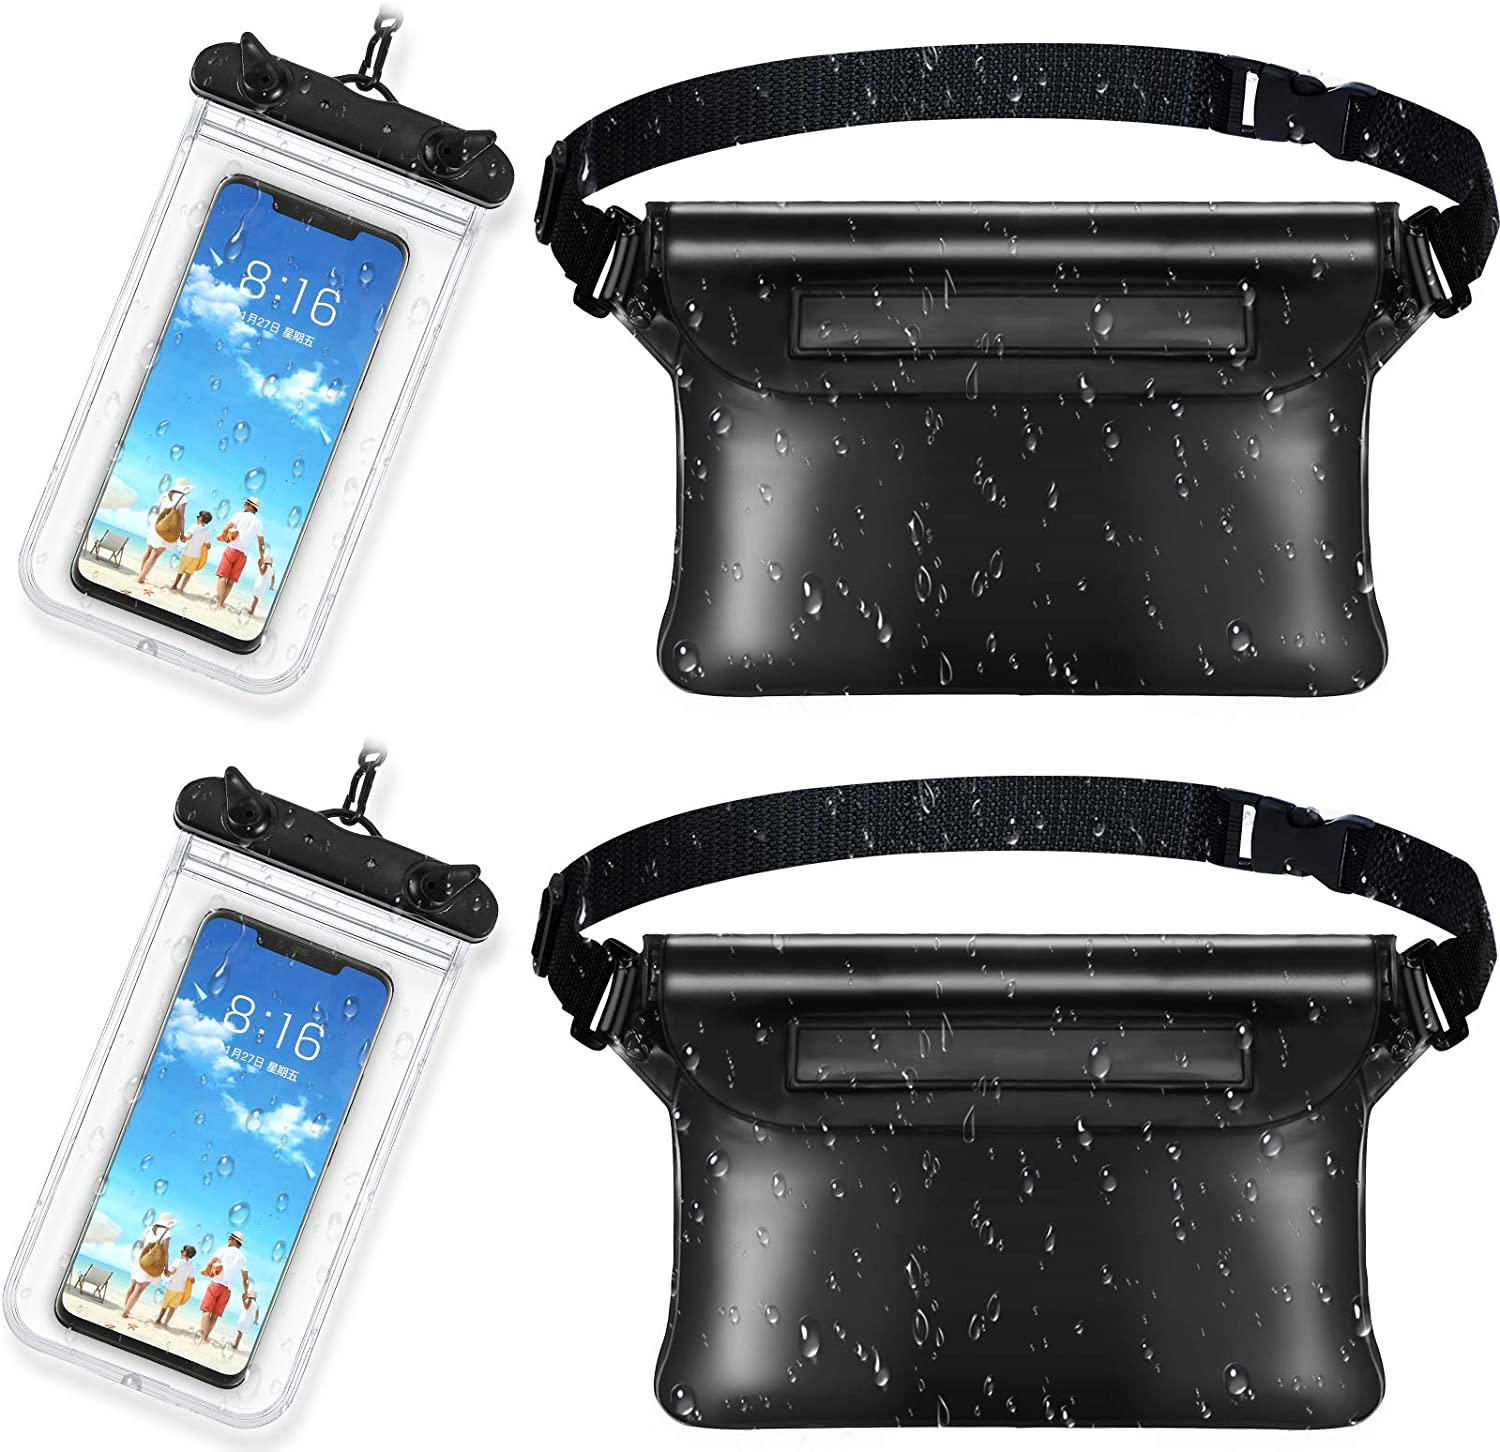 2 Pieces Waterproof Phone Pouch Universal Cellphone Case and 2 Waterproof Fanny Pack with Waist Strap Screen Touchable Dry Bag for Swimming Snorkeling Boating (Clear Black, Black)